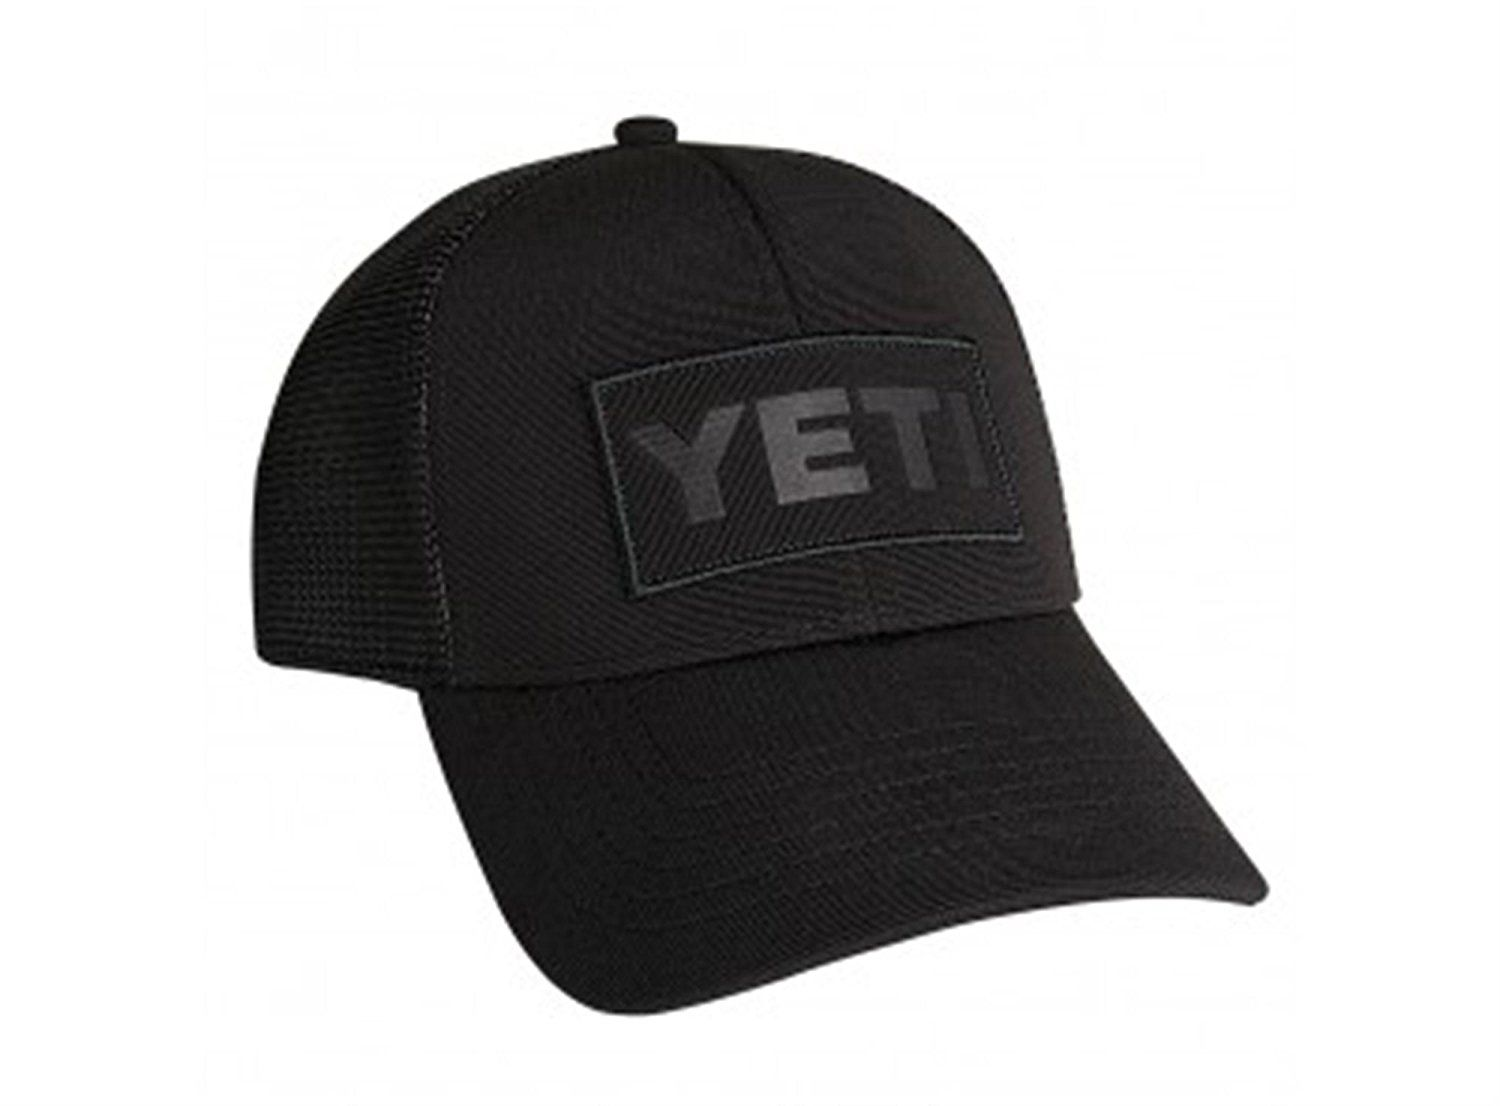 e4283e5bbfa Yeti Black on Black Patch Trucker Hat   This is an Amazon Affiliate link.  You can find out more details at the link of the image.